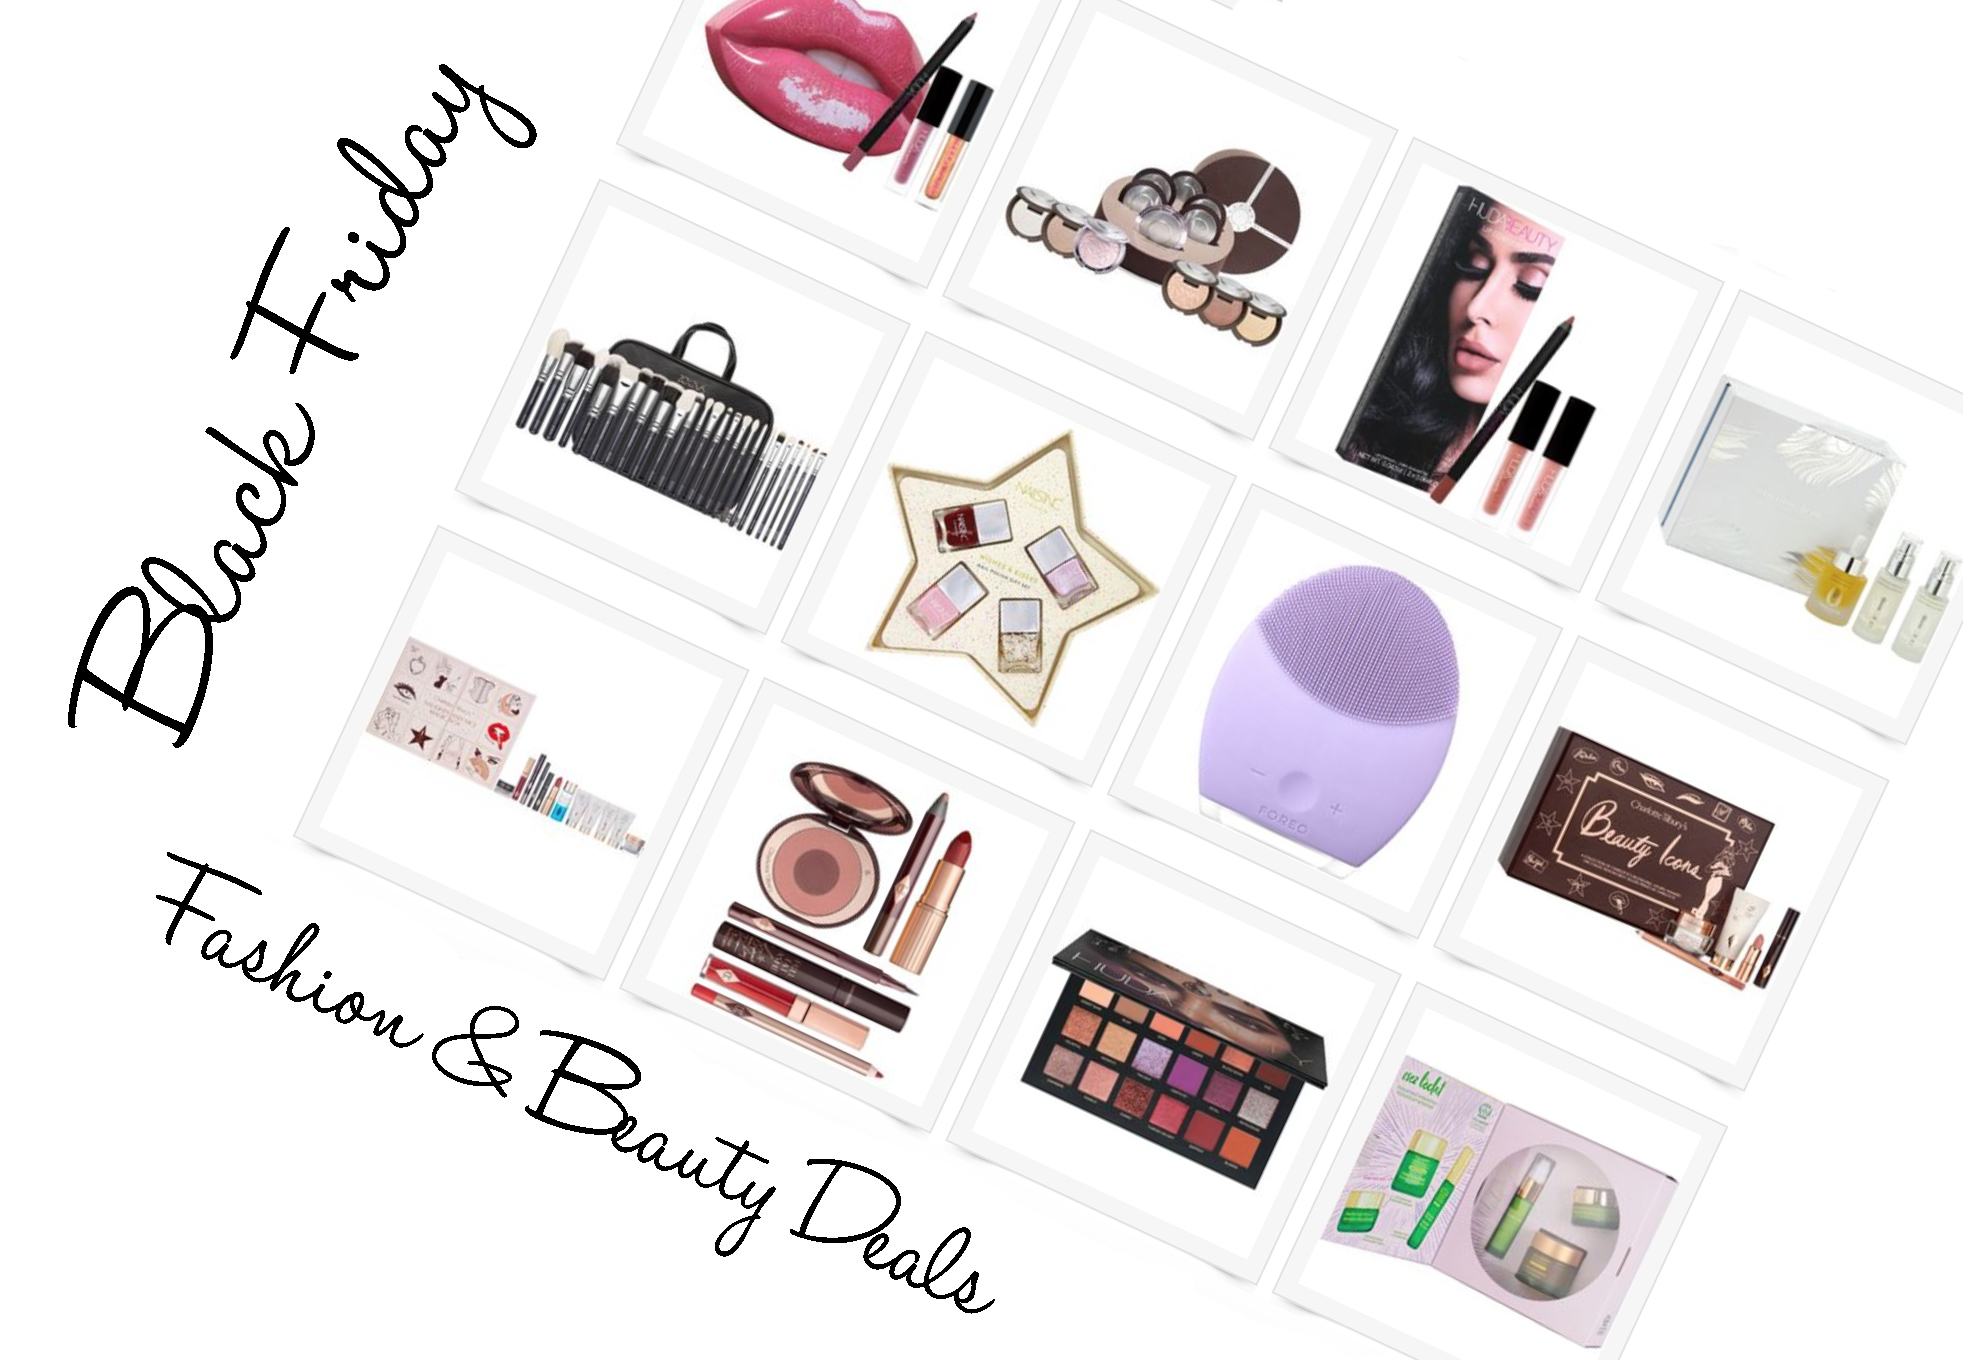 The Best Black Friday Fashion & Beauty Deals!